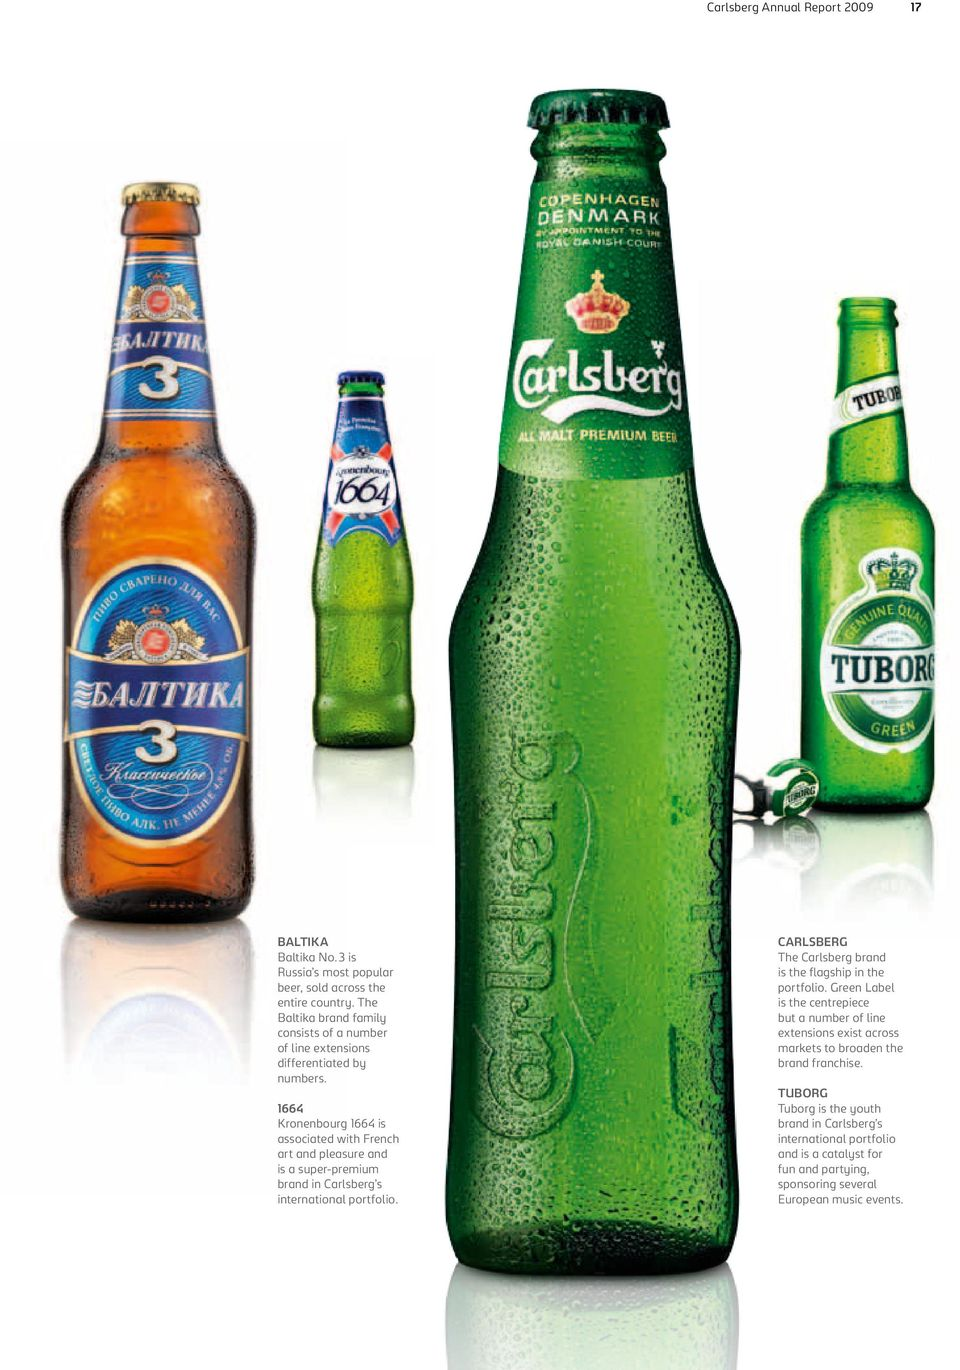 1664 Kronenbourg 1664 is associated with French art and pleasure and is a super-premium brand in Carlsberg s international portfolio.